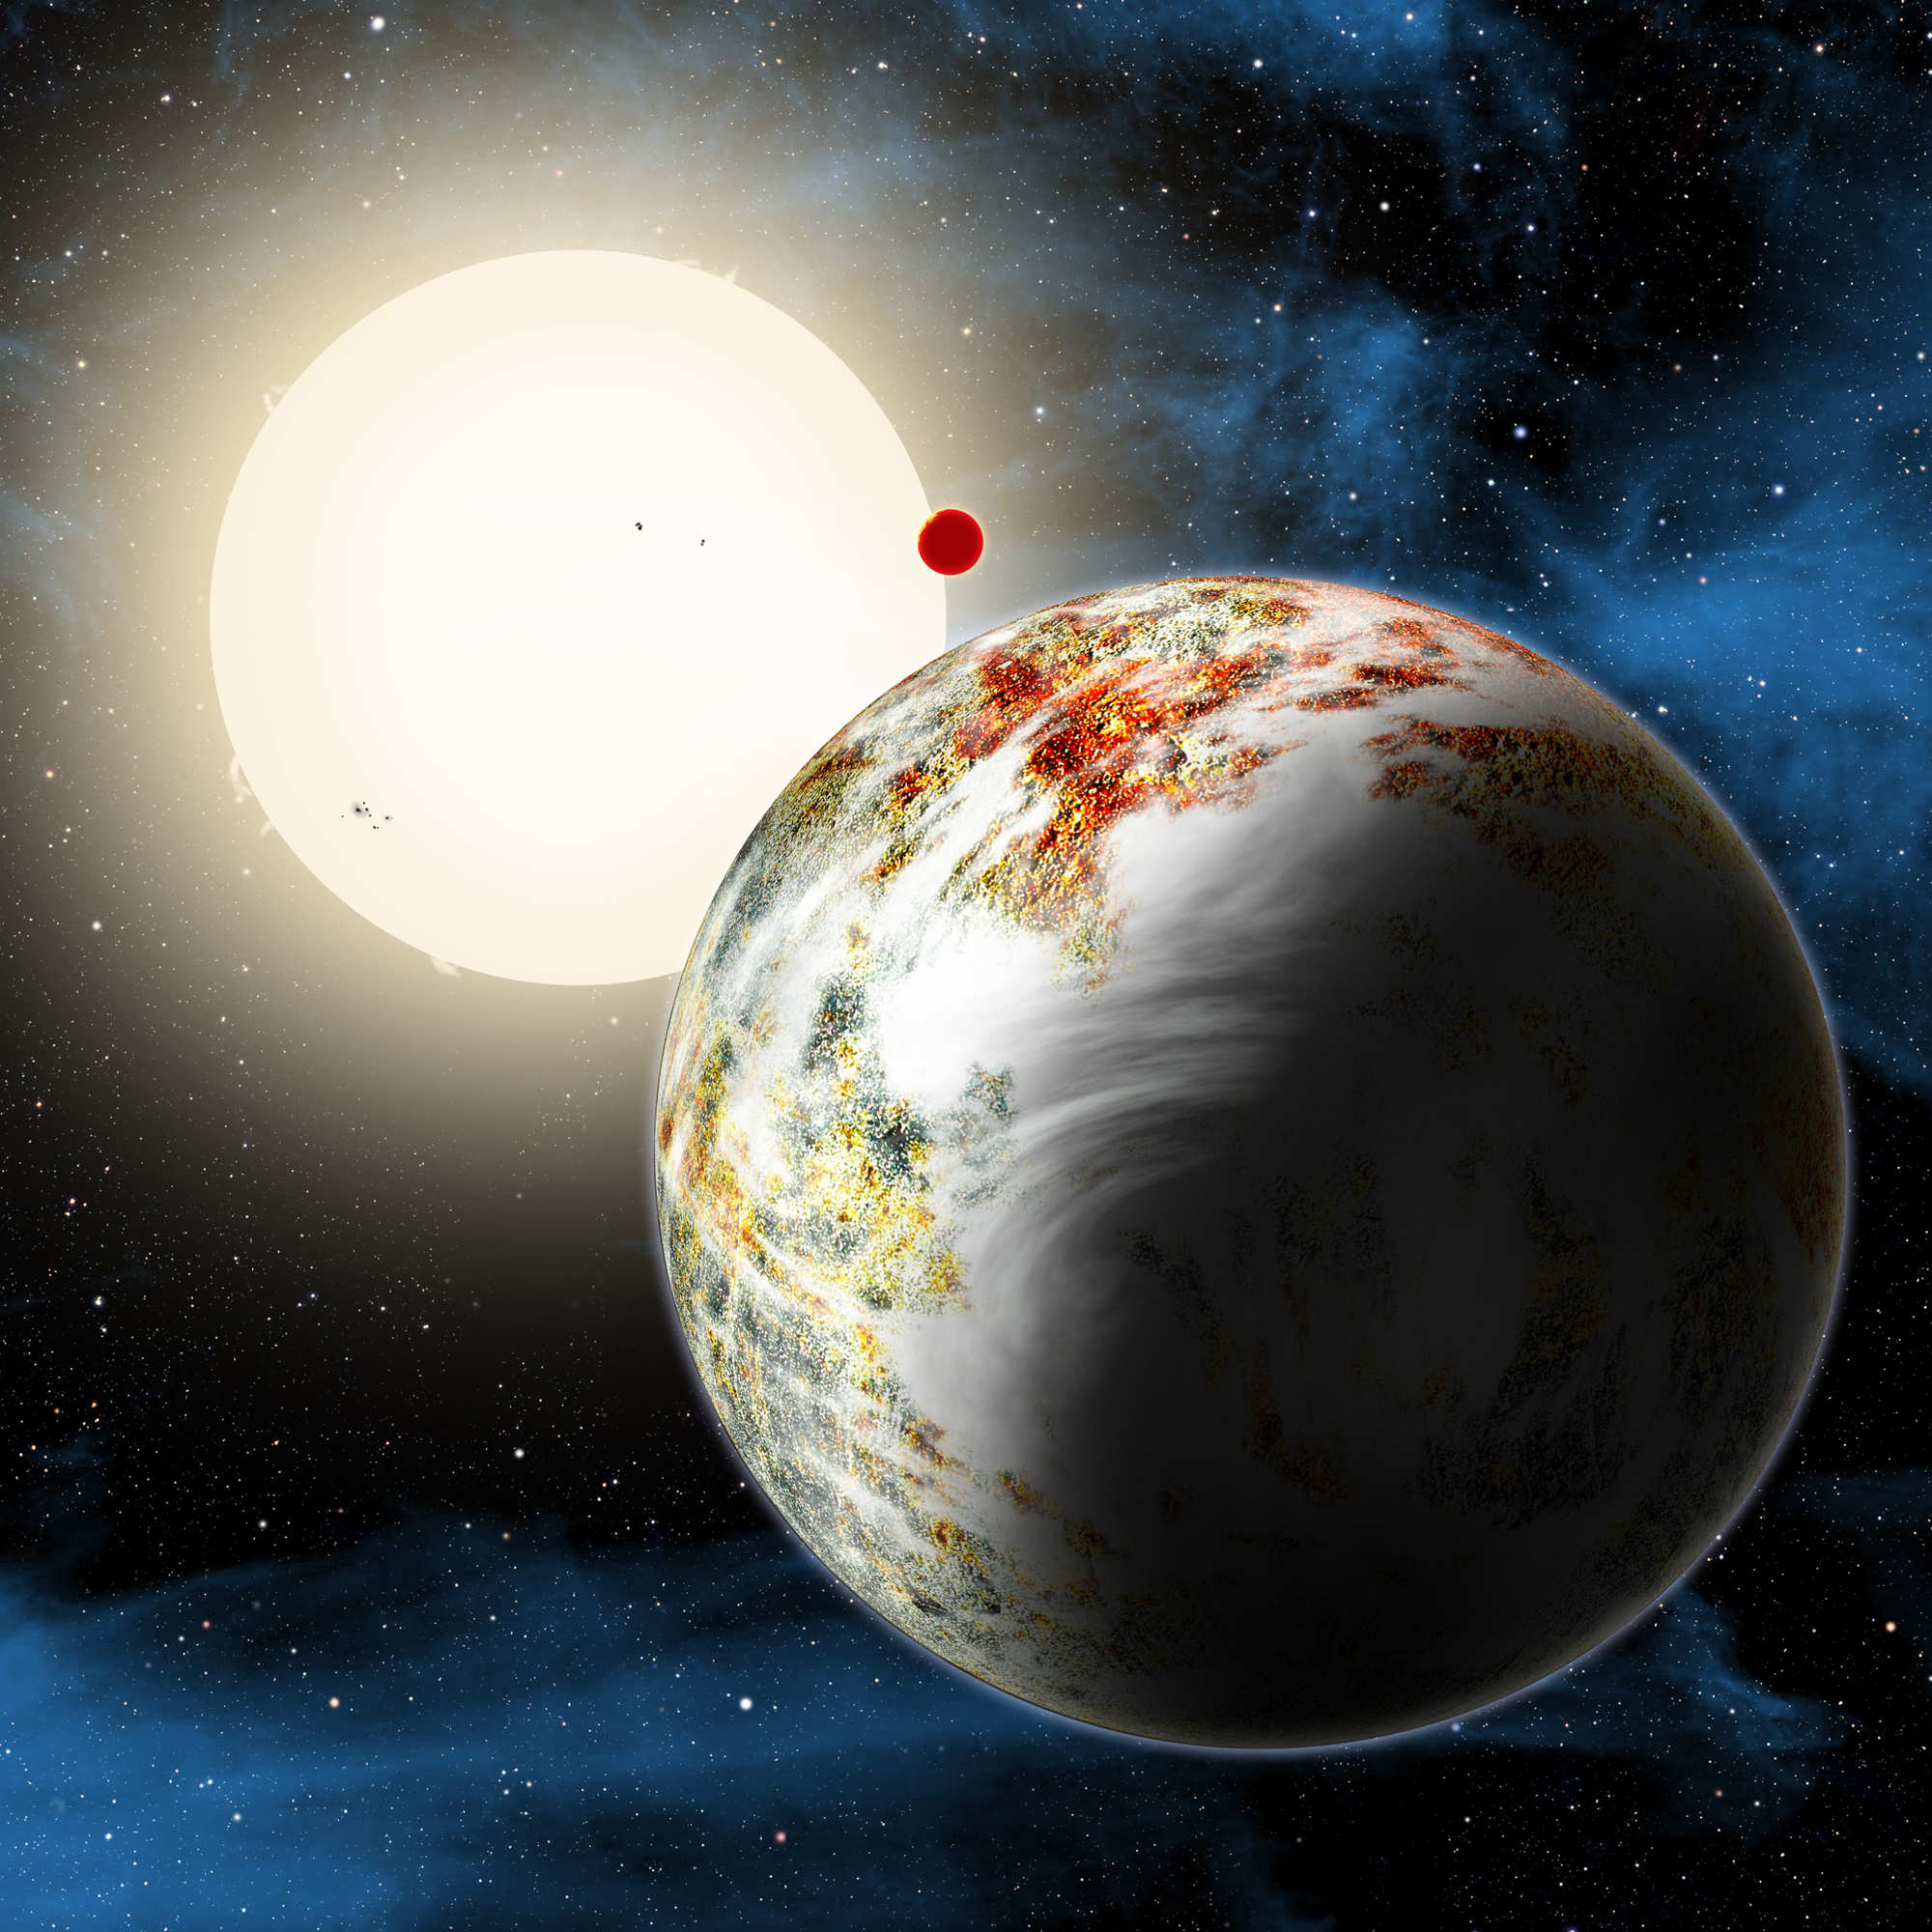 'Godzilla of Earths': Alien Planet 17 Times Heavier Than Our World Discovered